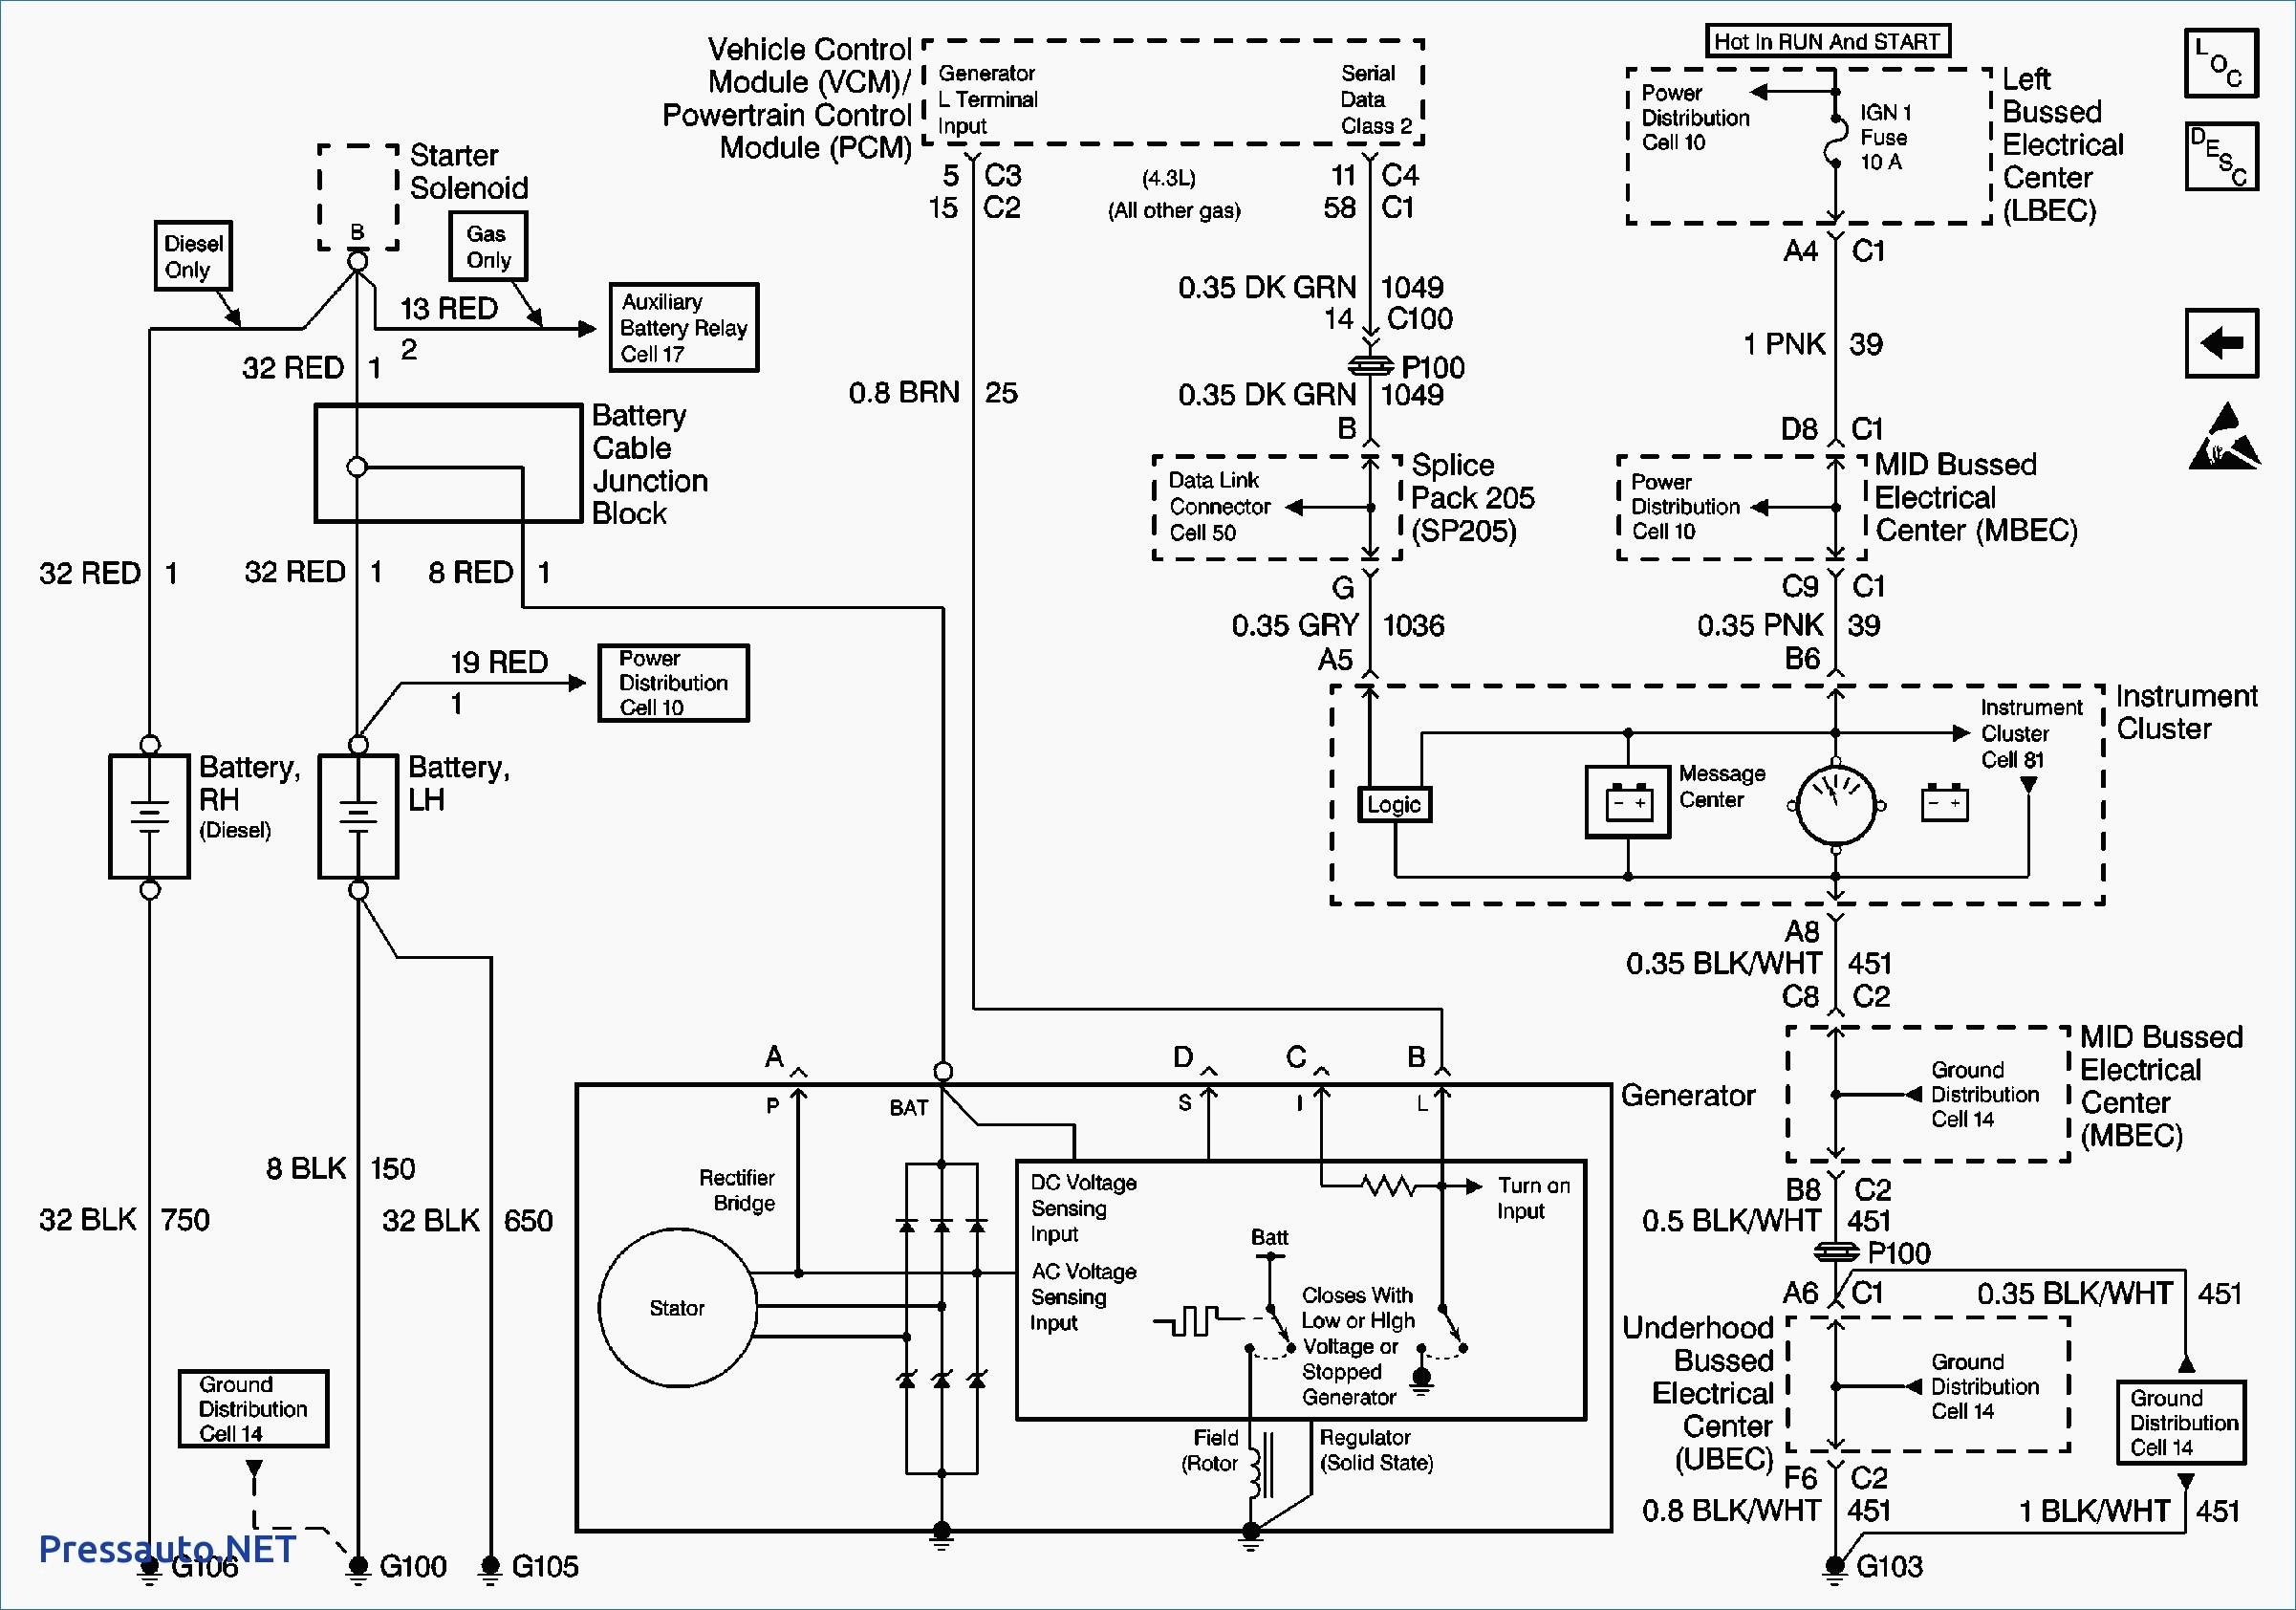 Chevy Silverado Trailer Wiring Diagram Fresh Boat Trailer Wiring Diagram Unique Chevrolet Silverado Trailer